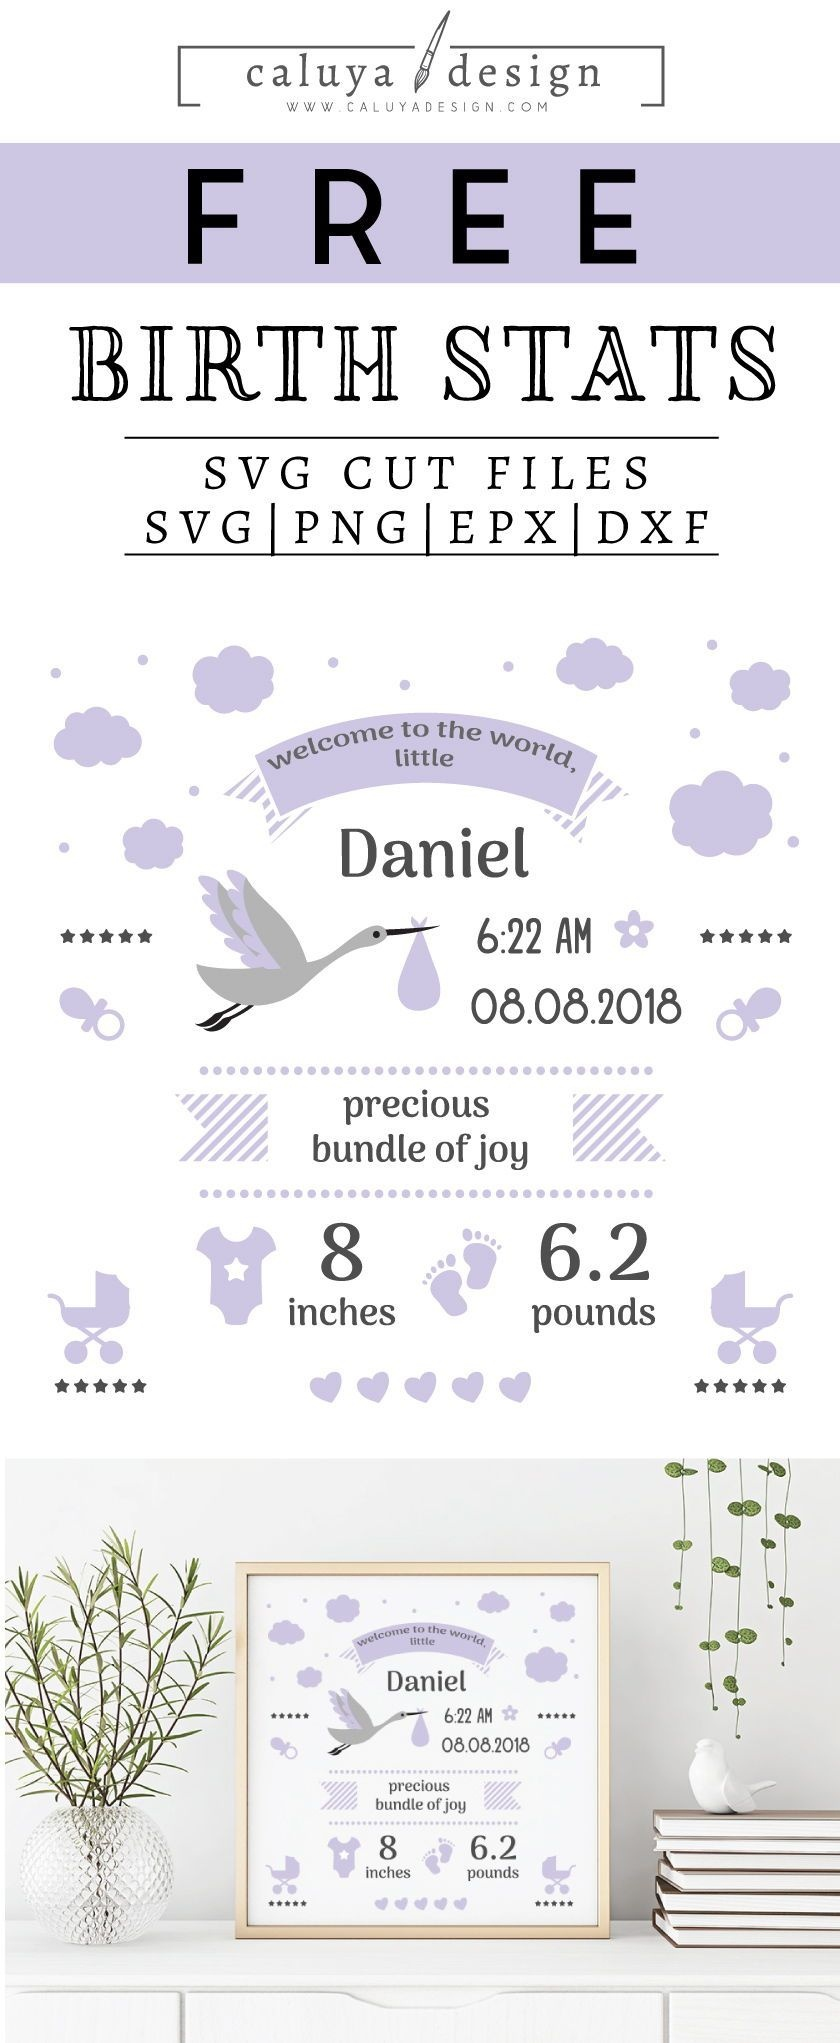 Free Birth Stats Board Svg, Png, Eps & Dxf| My Sanity Hobbies - Free Birth Announcements Printable